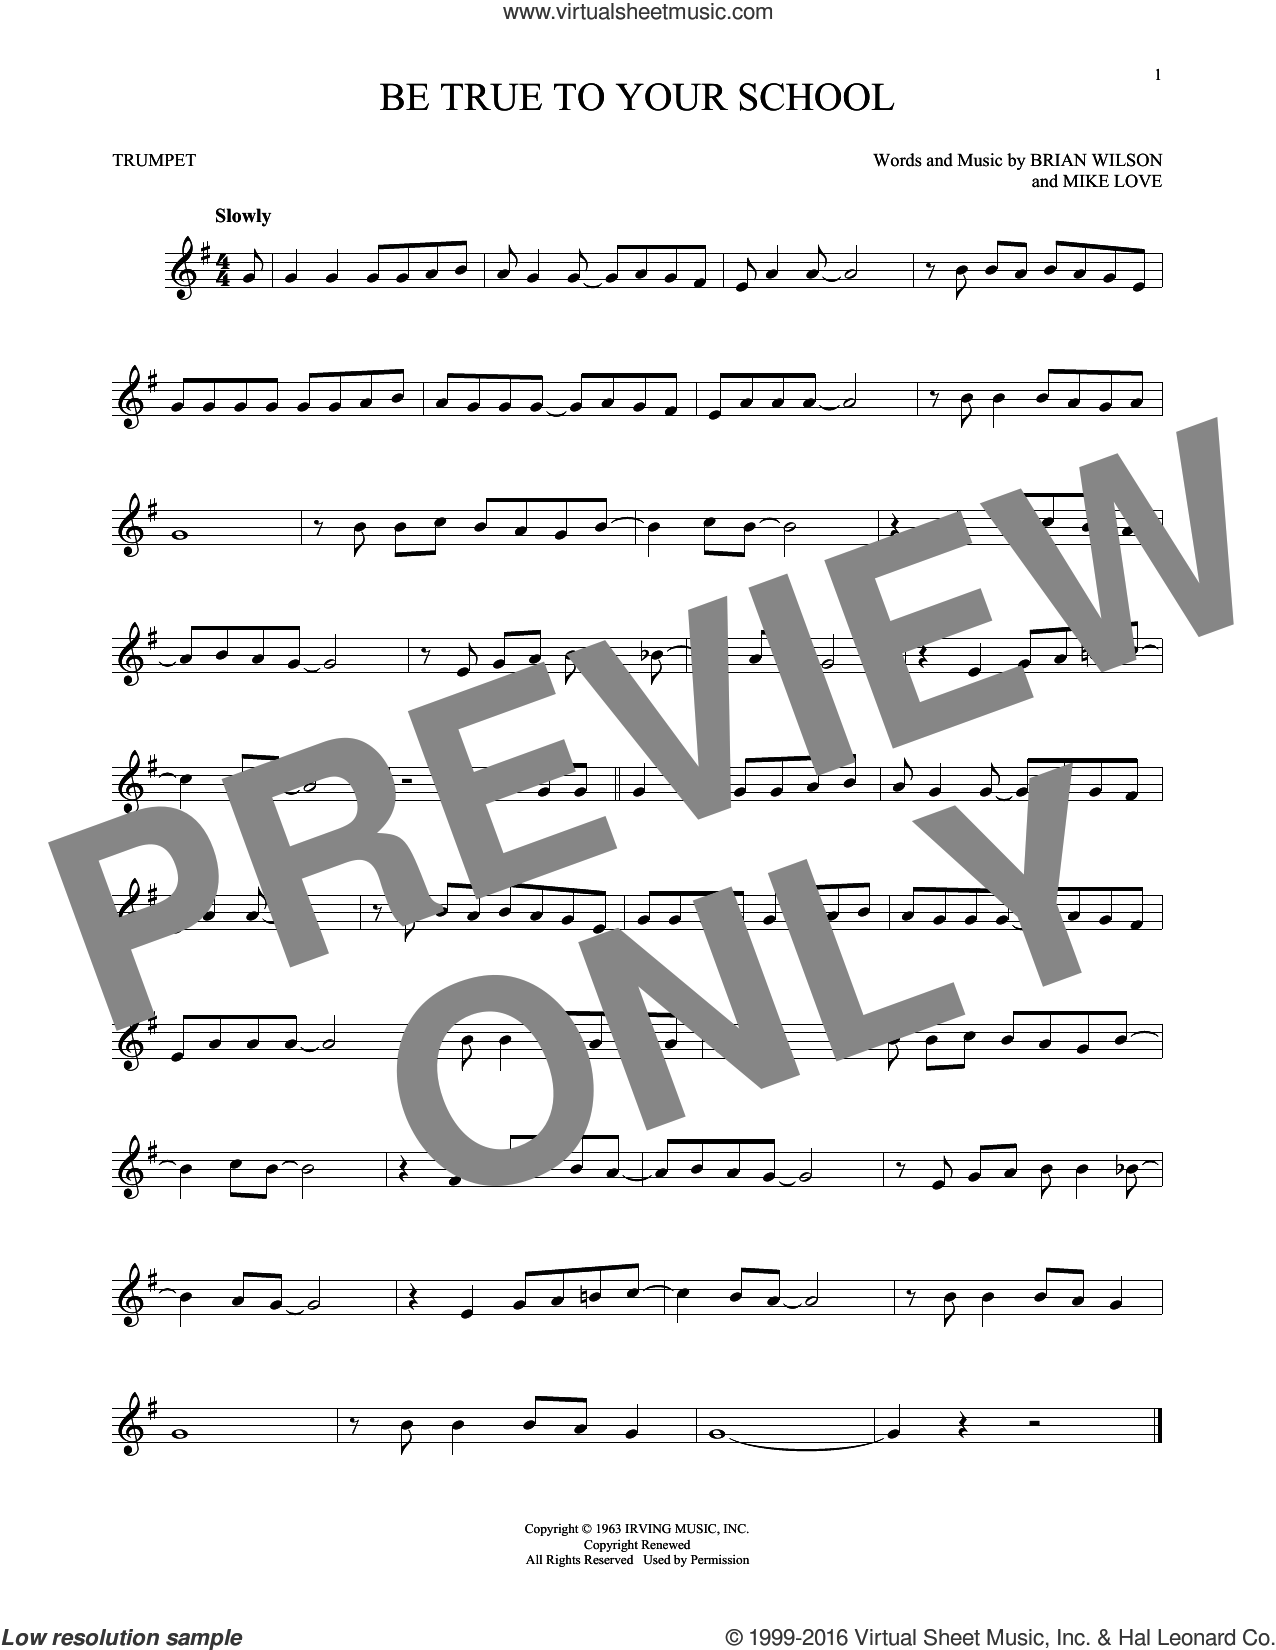 Be True To Your School sheet music for trumpet solo by The Beach Boys, Brian Wilson and Mike Love, intermediate skill level